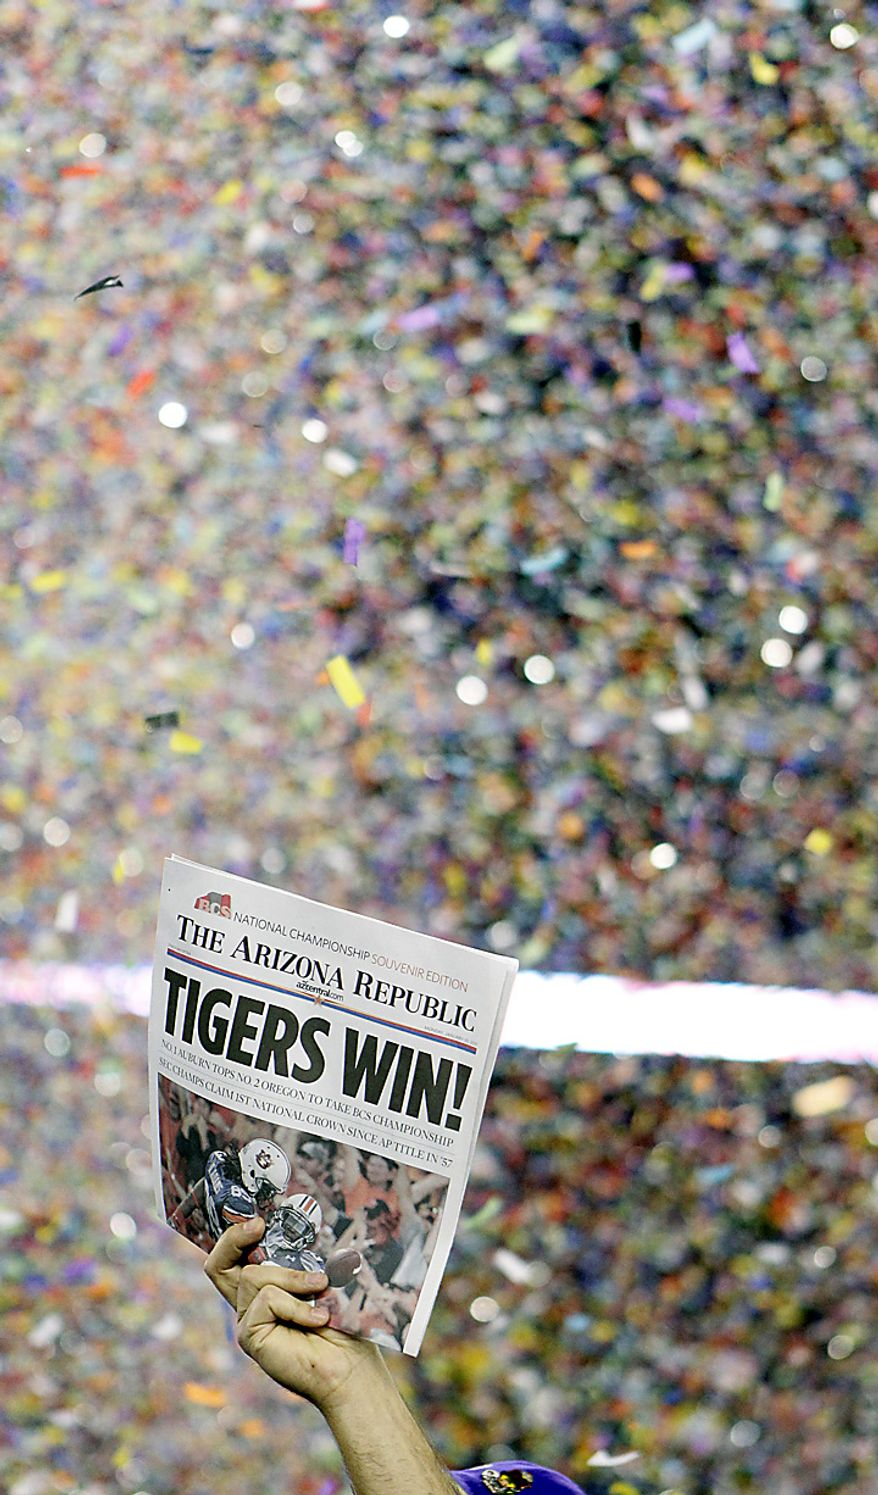 A newspaper announces Auburn's win over Oregon, 22-19, in the BCS national championship NCAA college football game on Monday, Jan. 10, 2011, in Glendale, Ariz. (AP Photo/Matt York)